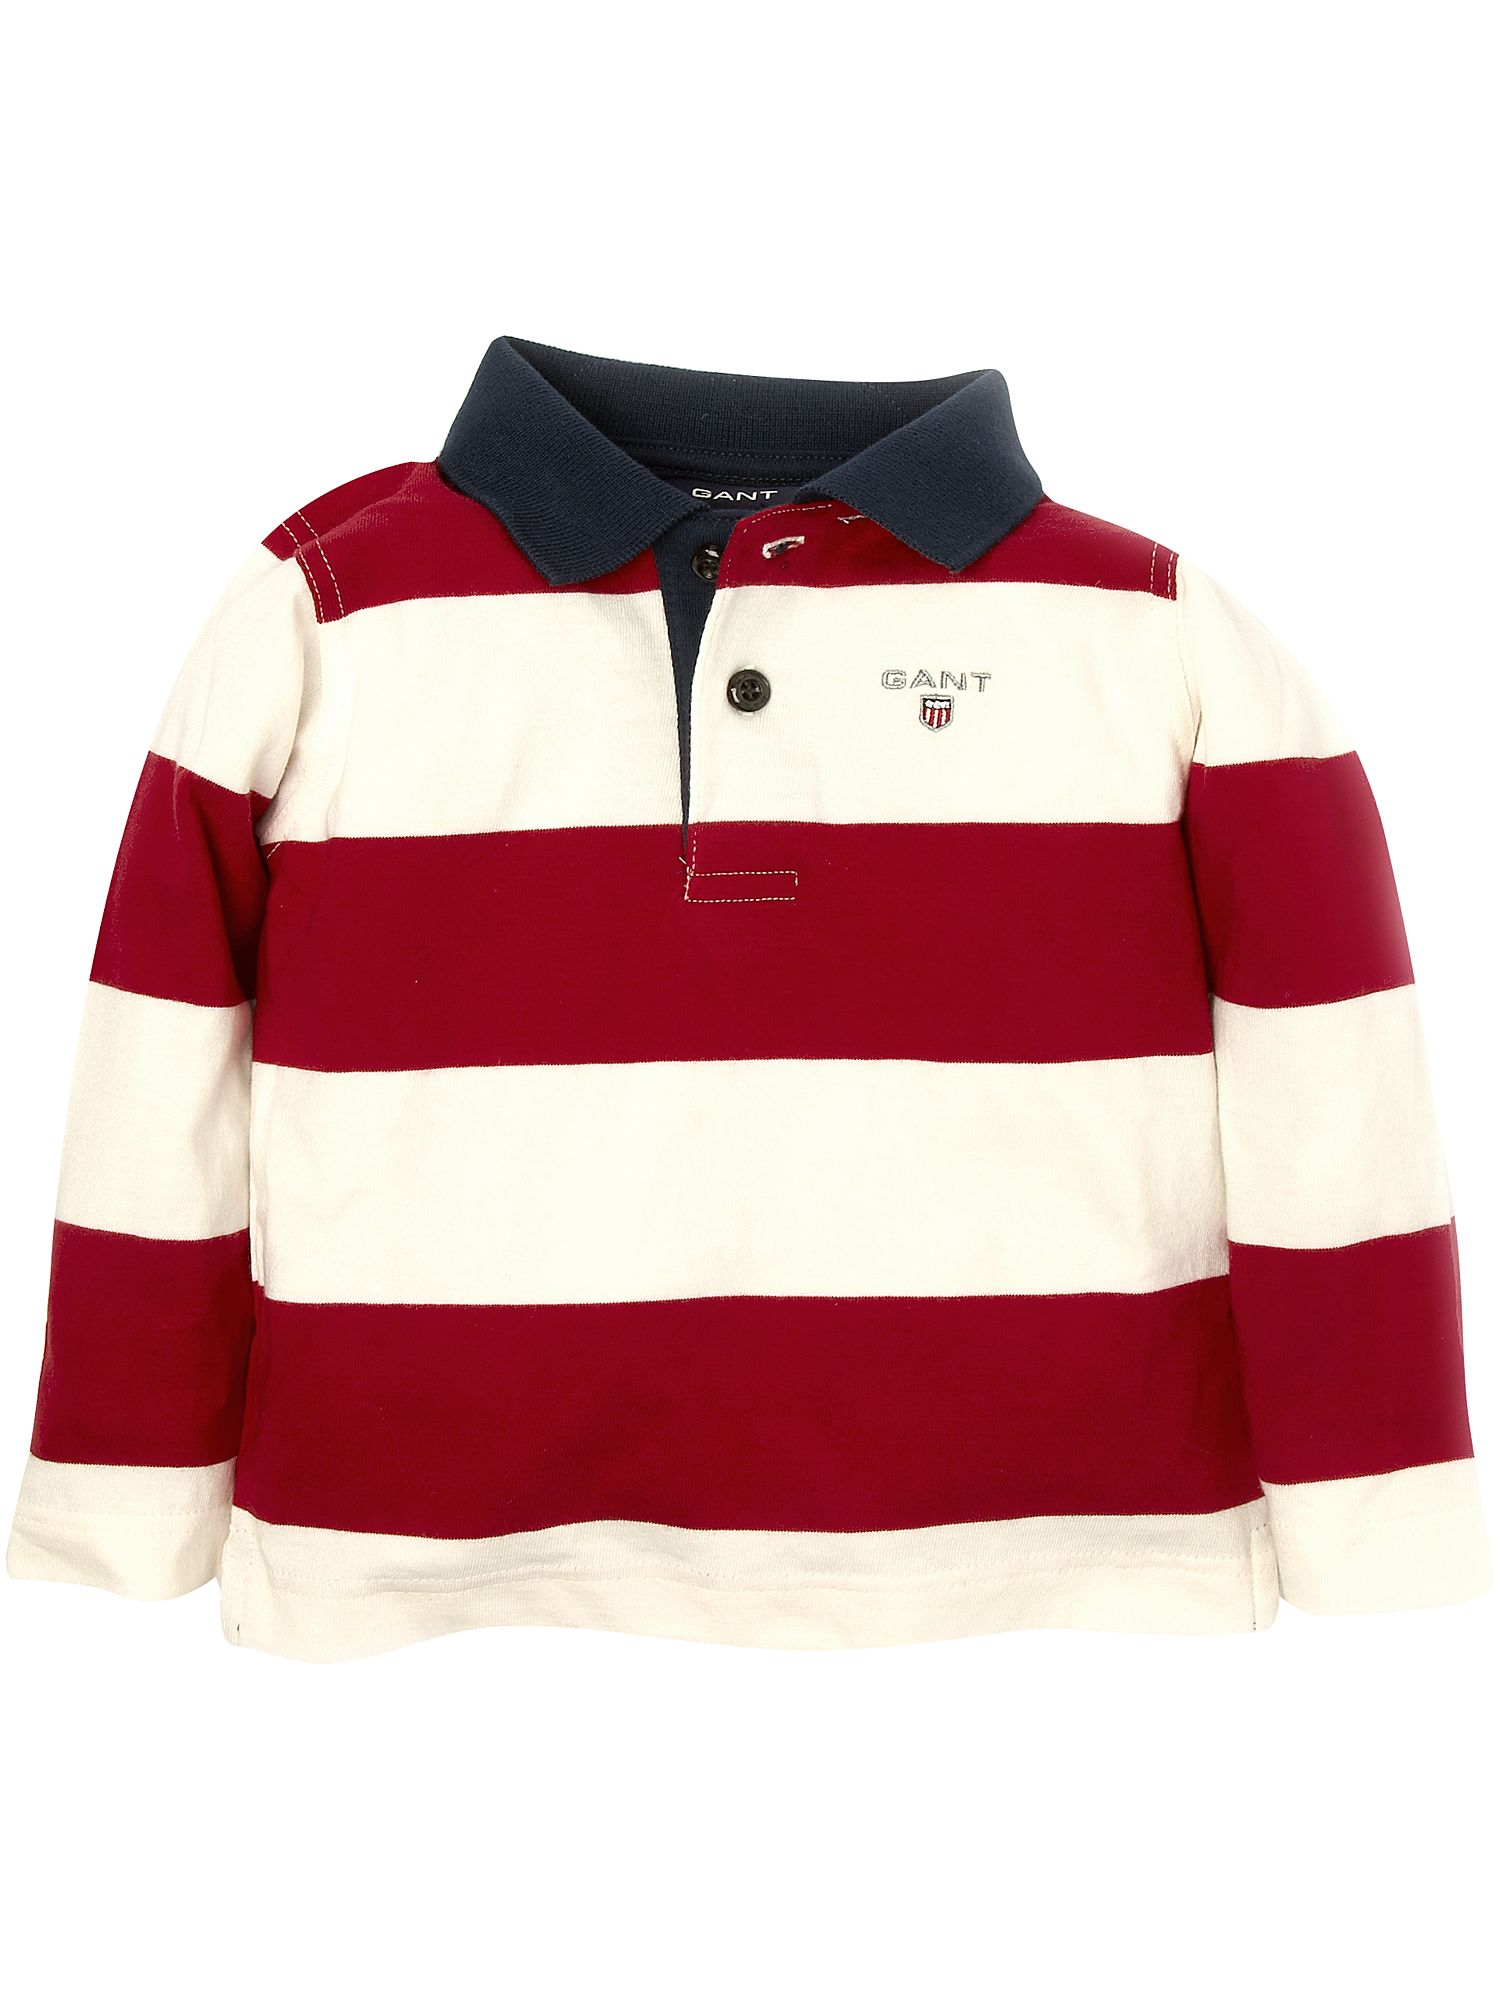 Long-sleeved block striped rugby shirt Red